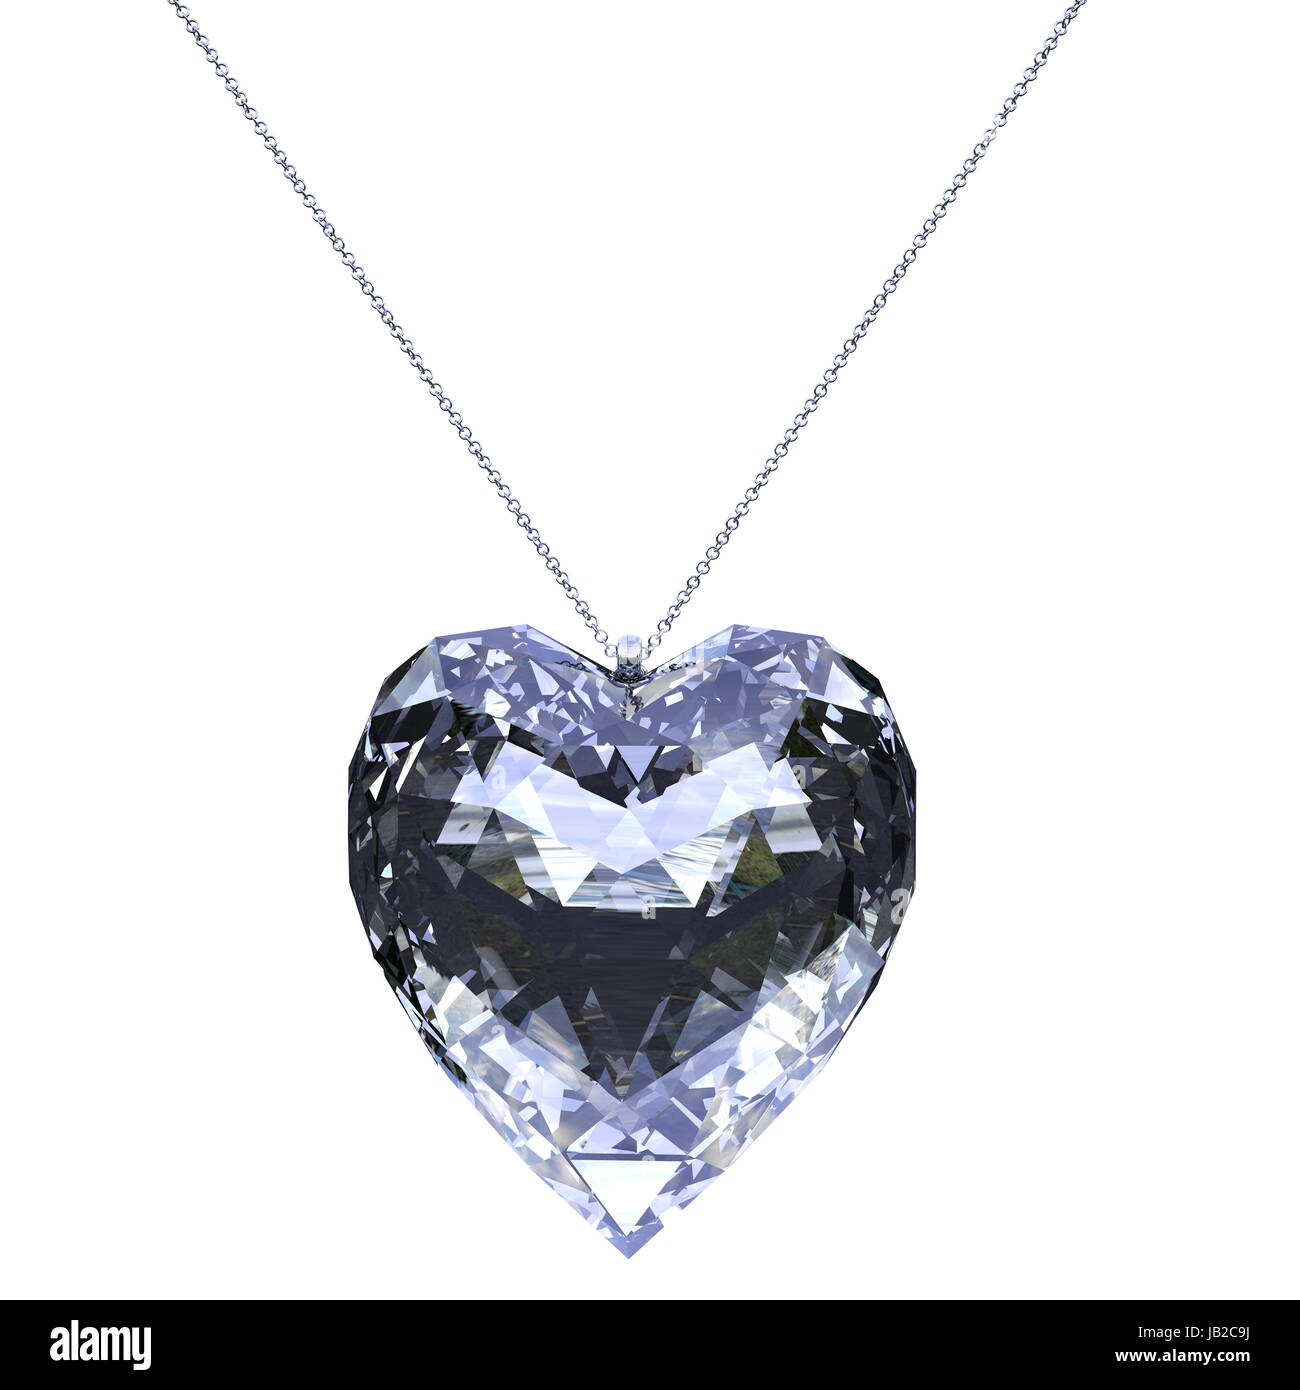 pendant glossy heart shaped made in 3d with clipping path - Stock Image